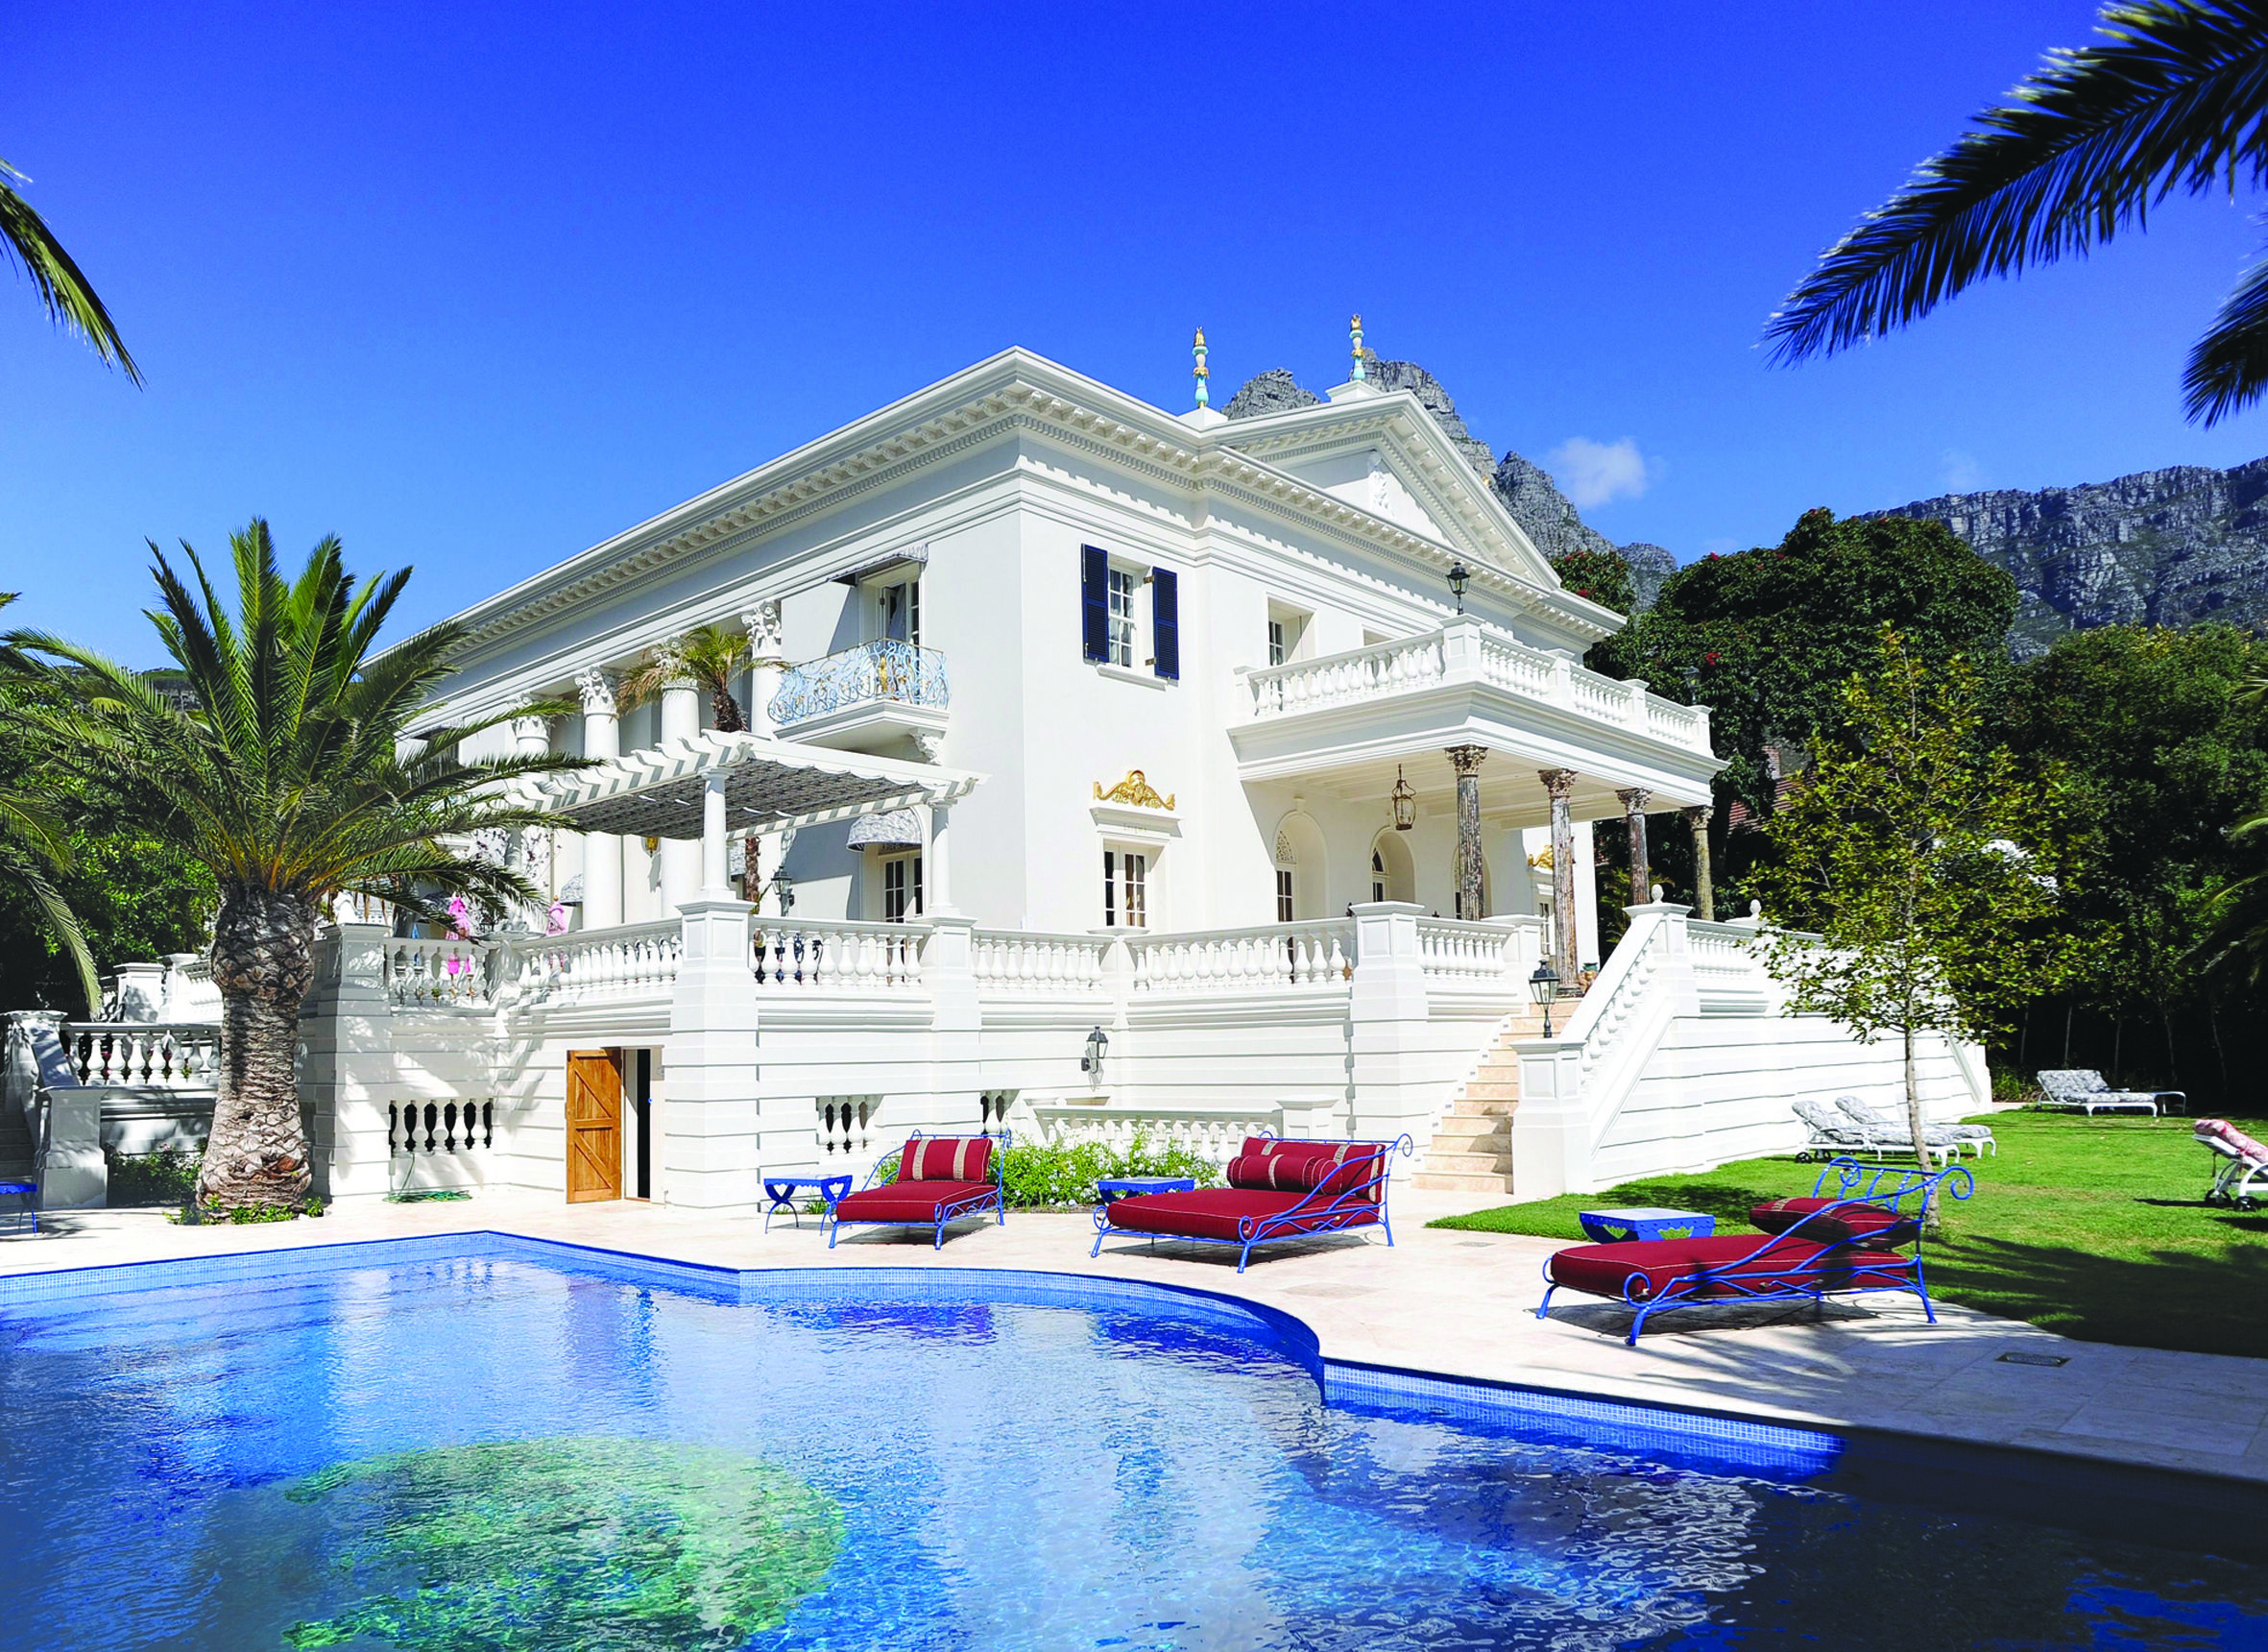 The Enigma Mansion in Cape Town, Africa is one of the most